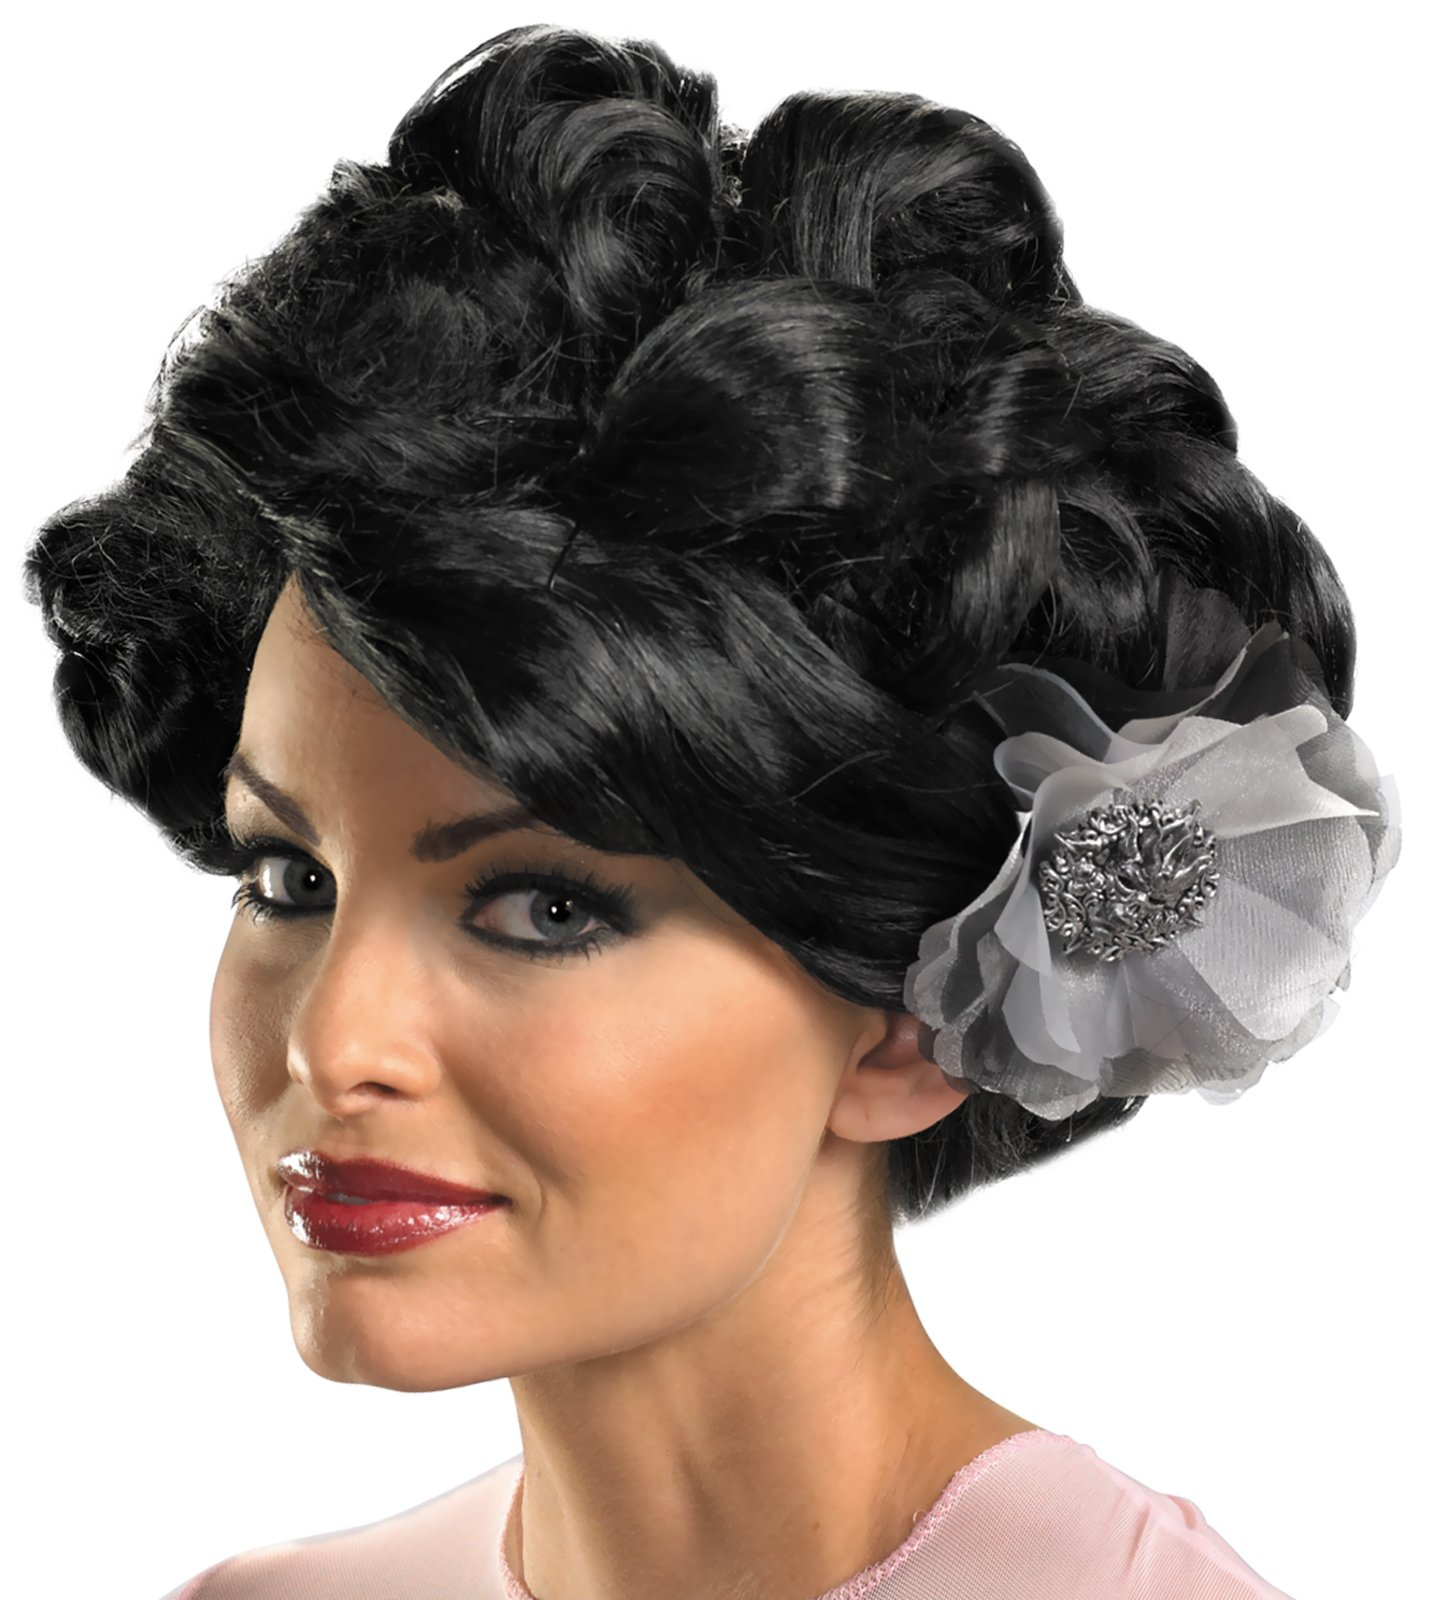 Dark Bloom Deluxe Wig (Adult)